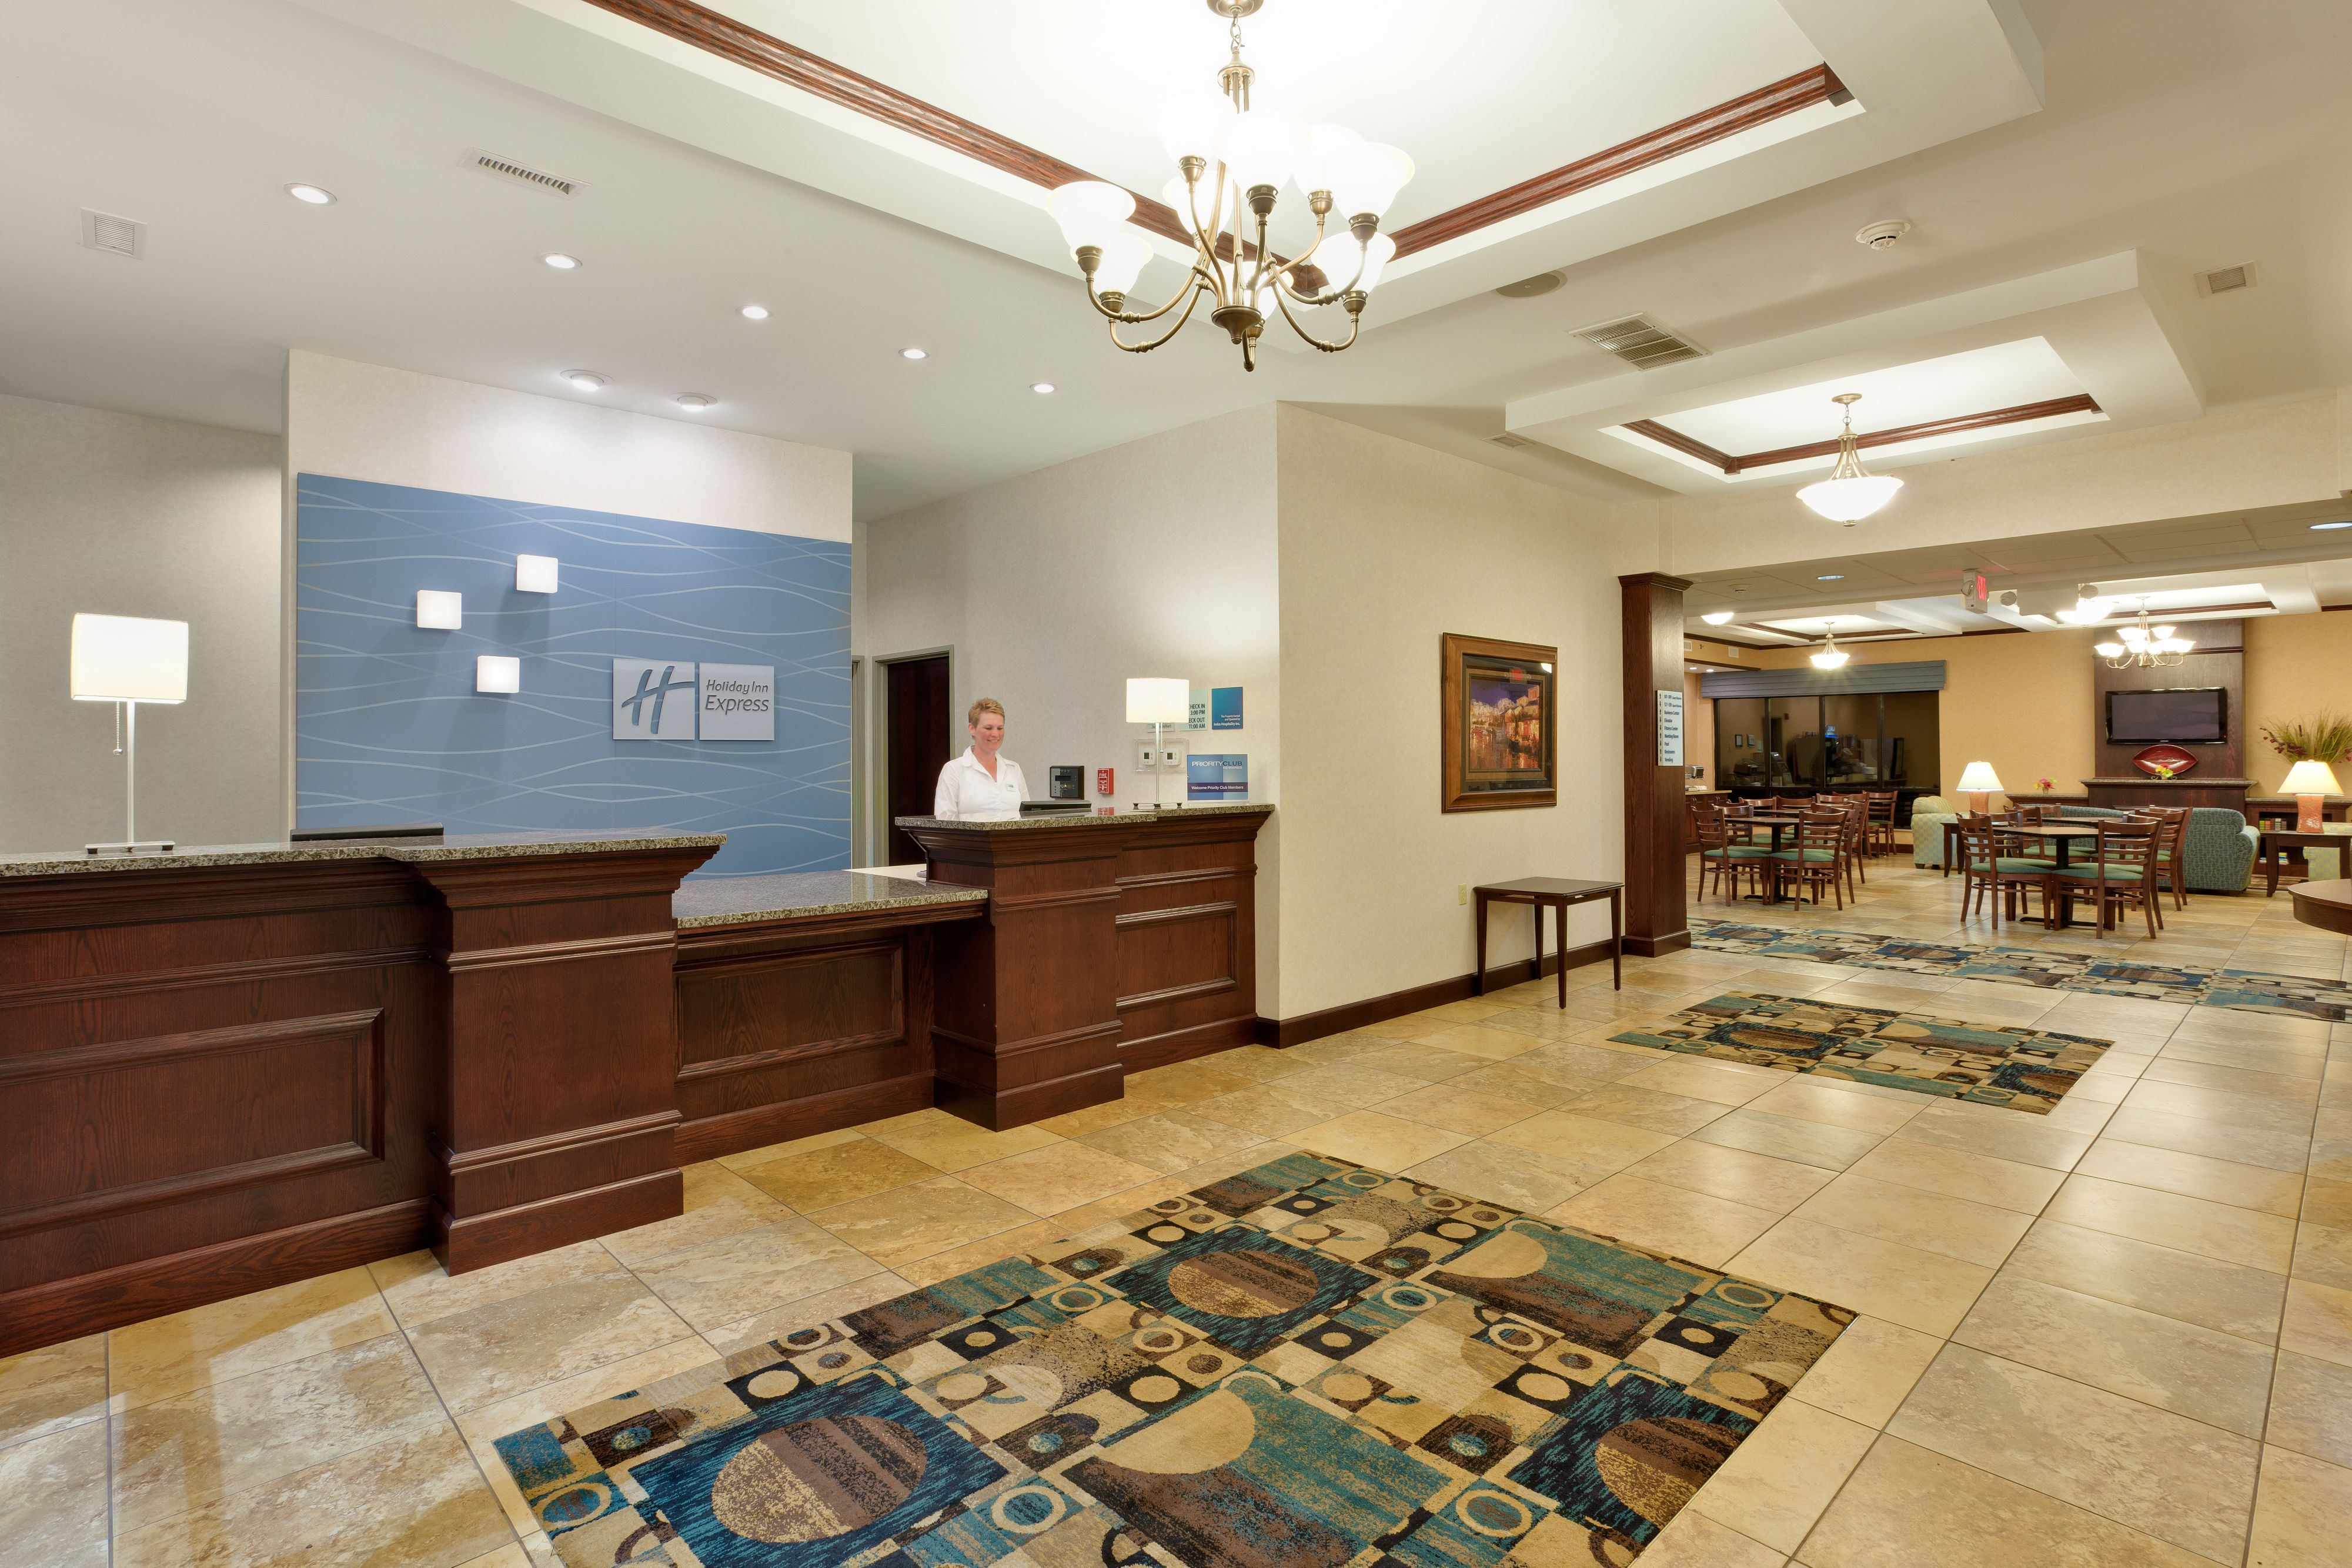 Holiday Inn Express & Suites White Haven - Poconos image 9